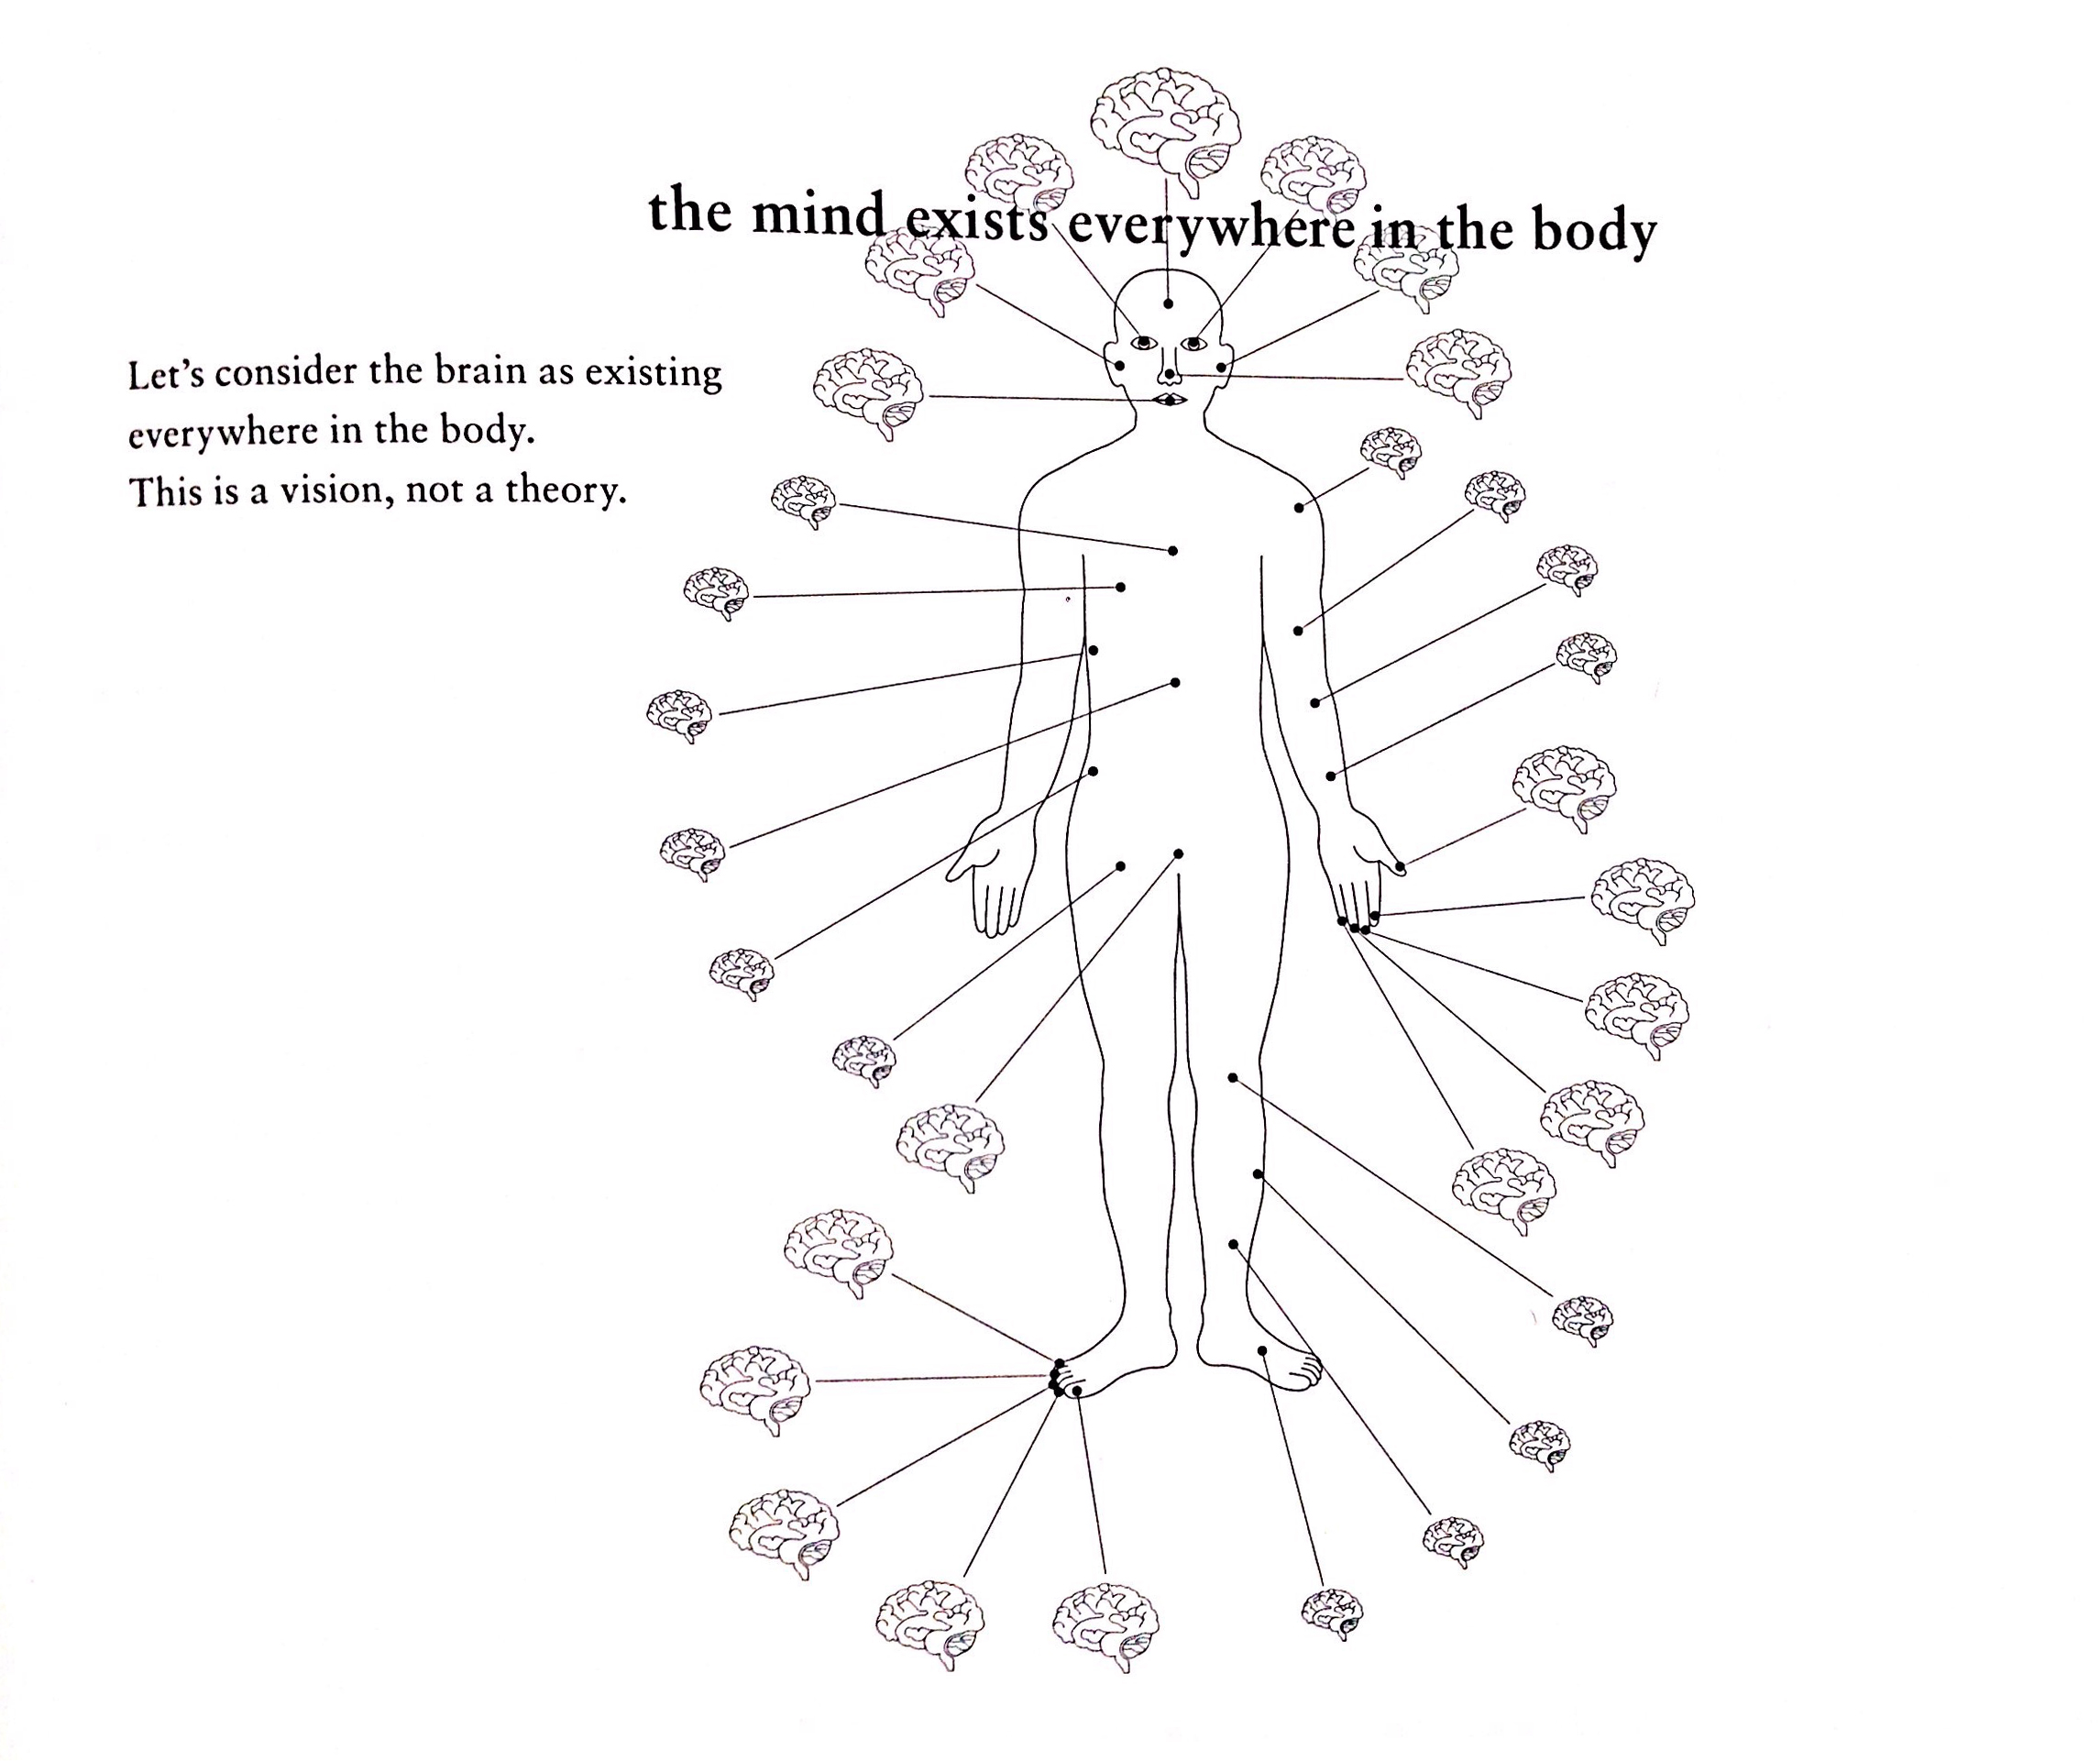 The mind and the body.Hara, K.Designing Design. P. 157. (2015)